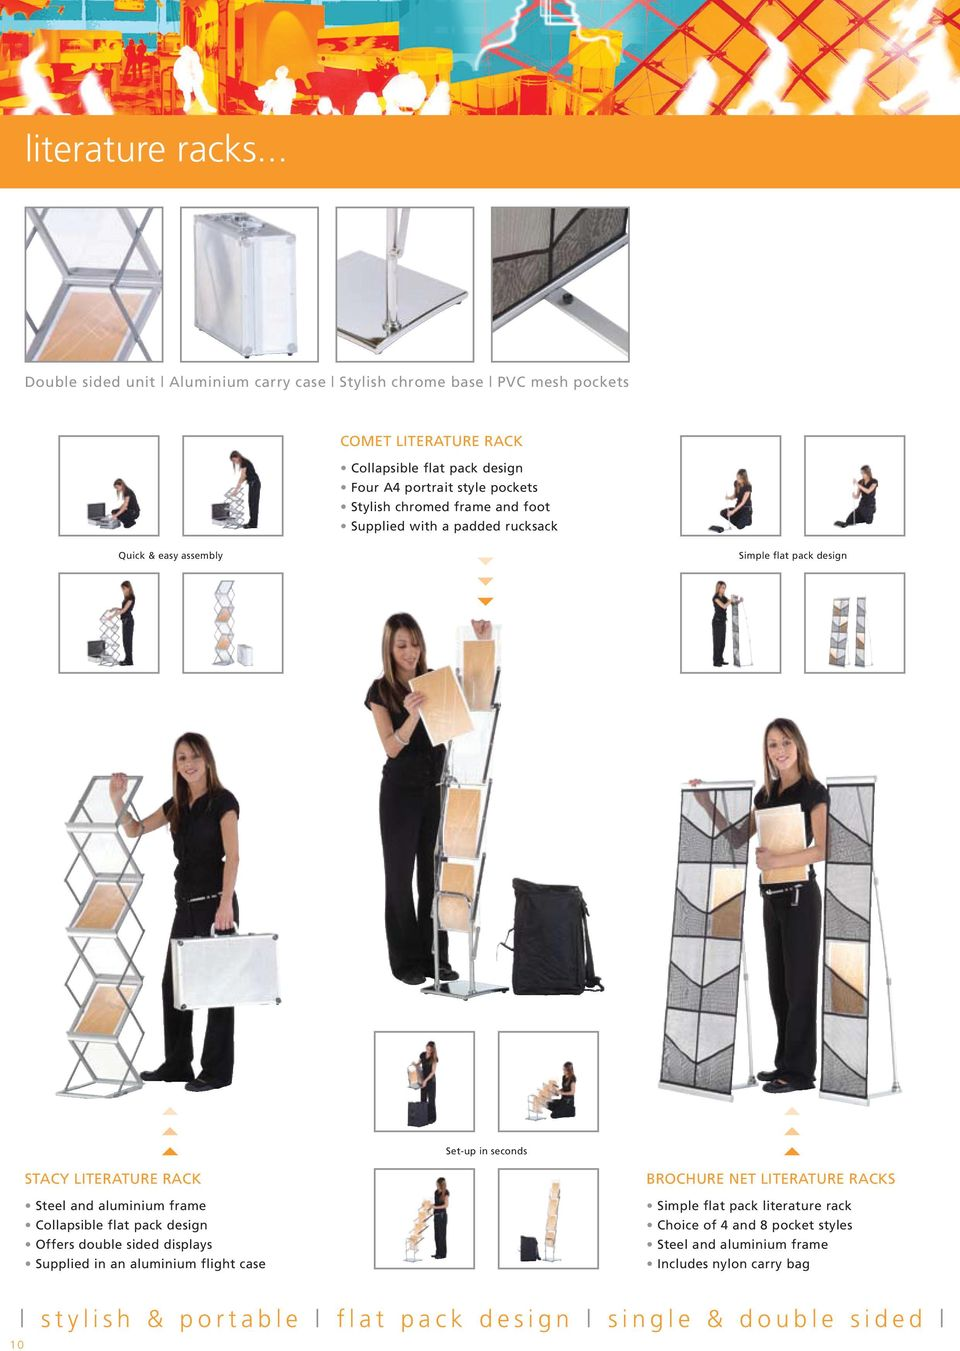 portrait style pockets Stylish chromed frame and foot Supplied with a padded rucksack Simple flat pack design STACY LITERATURE RACK Steel and aluminium frame